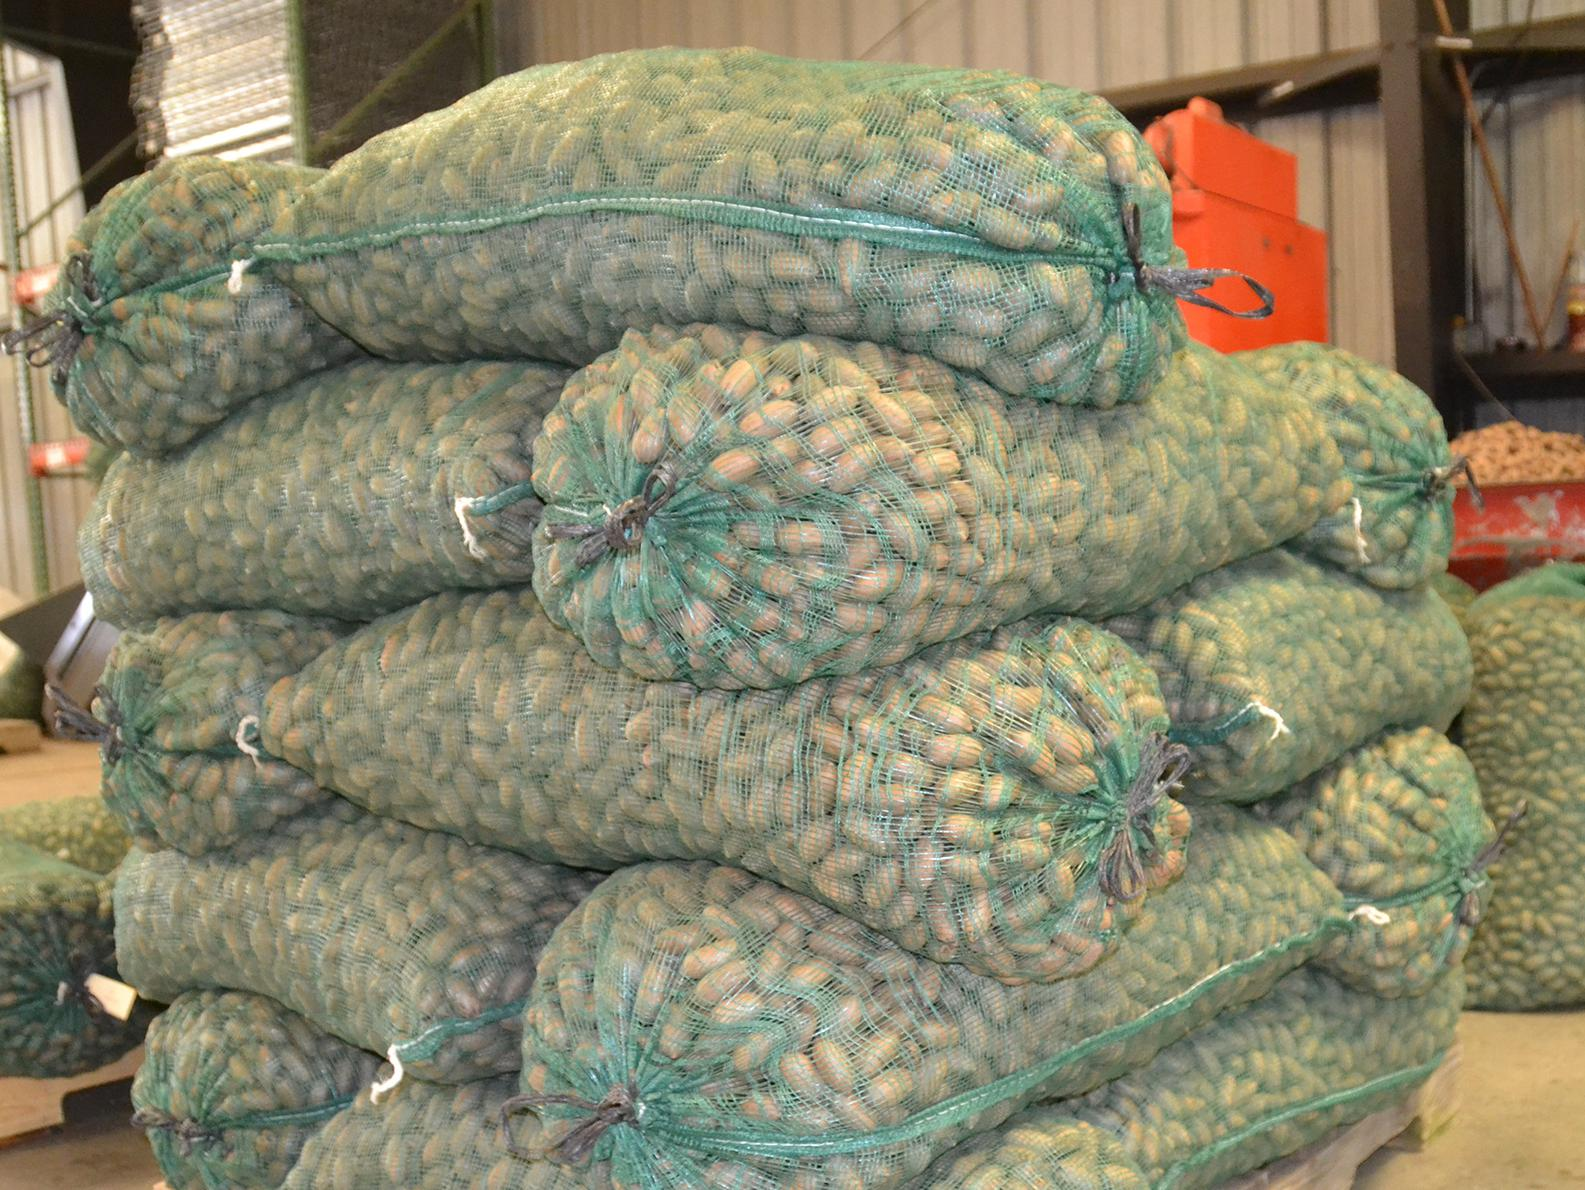 About a dozen large, 50-pound bags of unshelled pecans are piled on top of a wood palet.